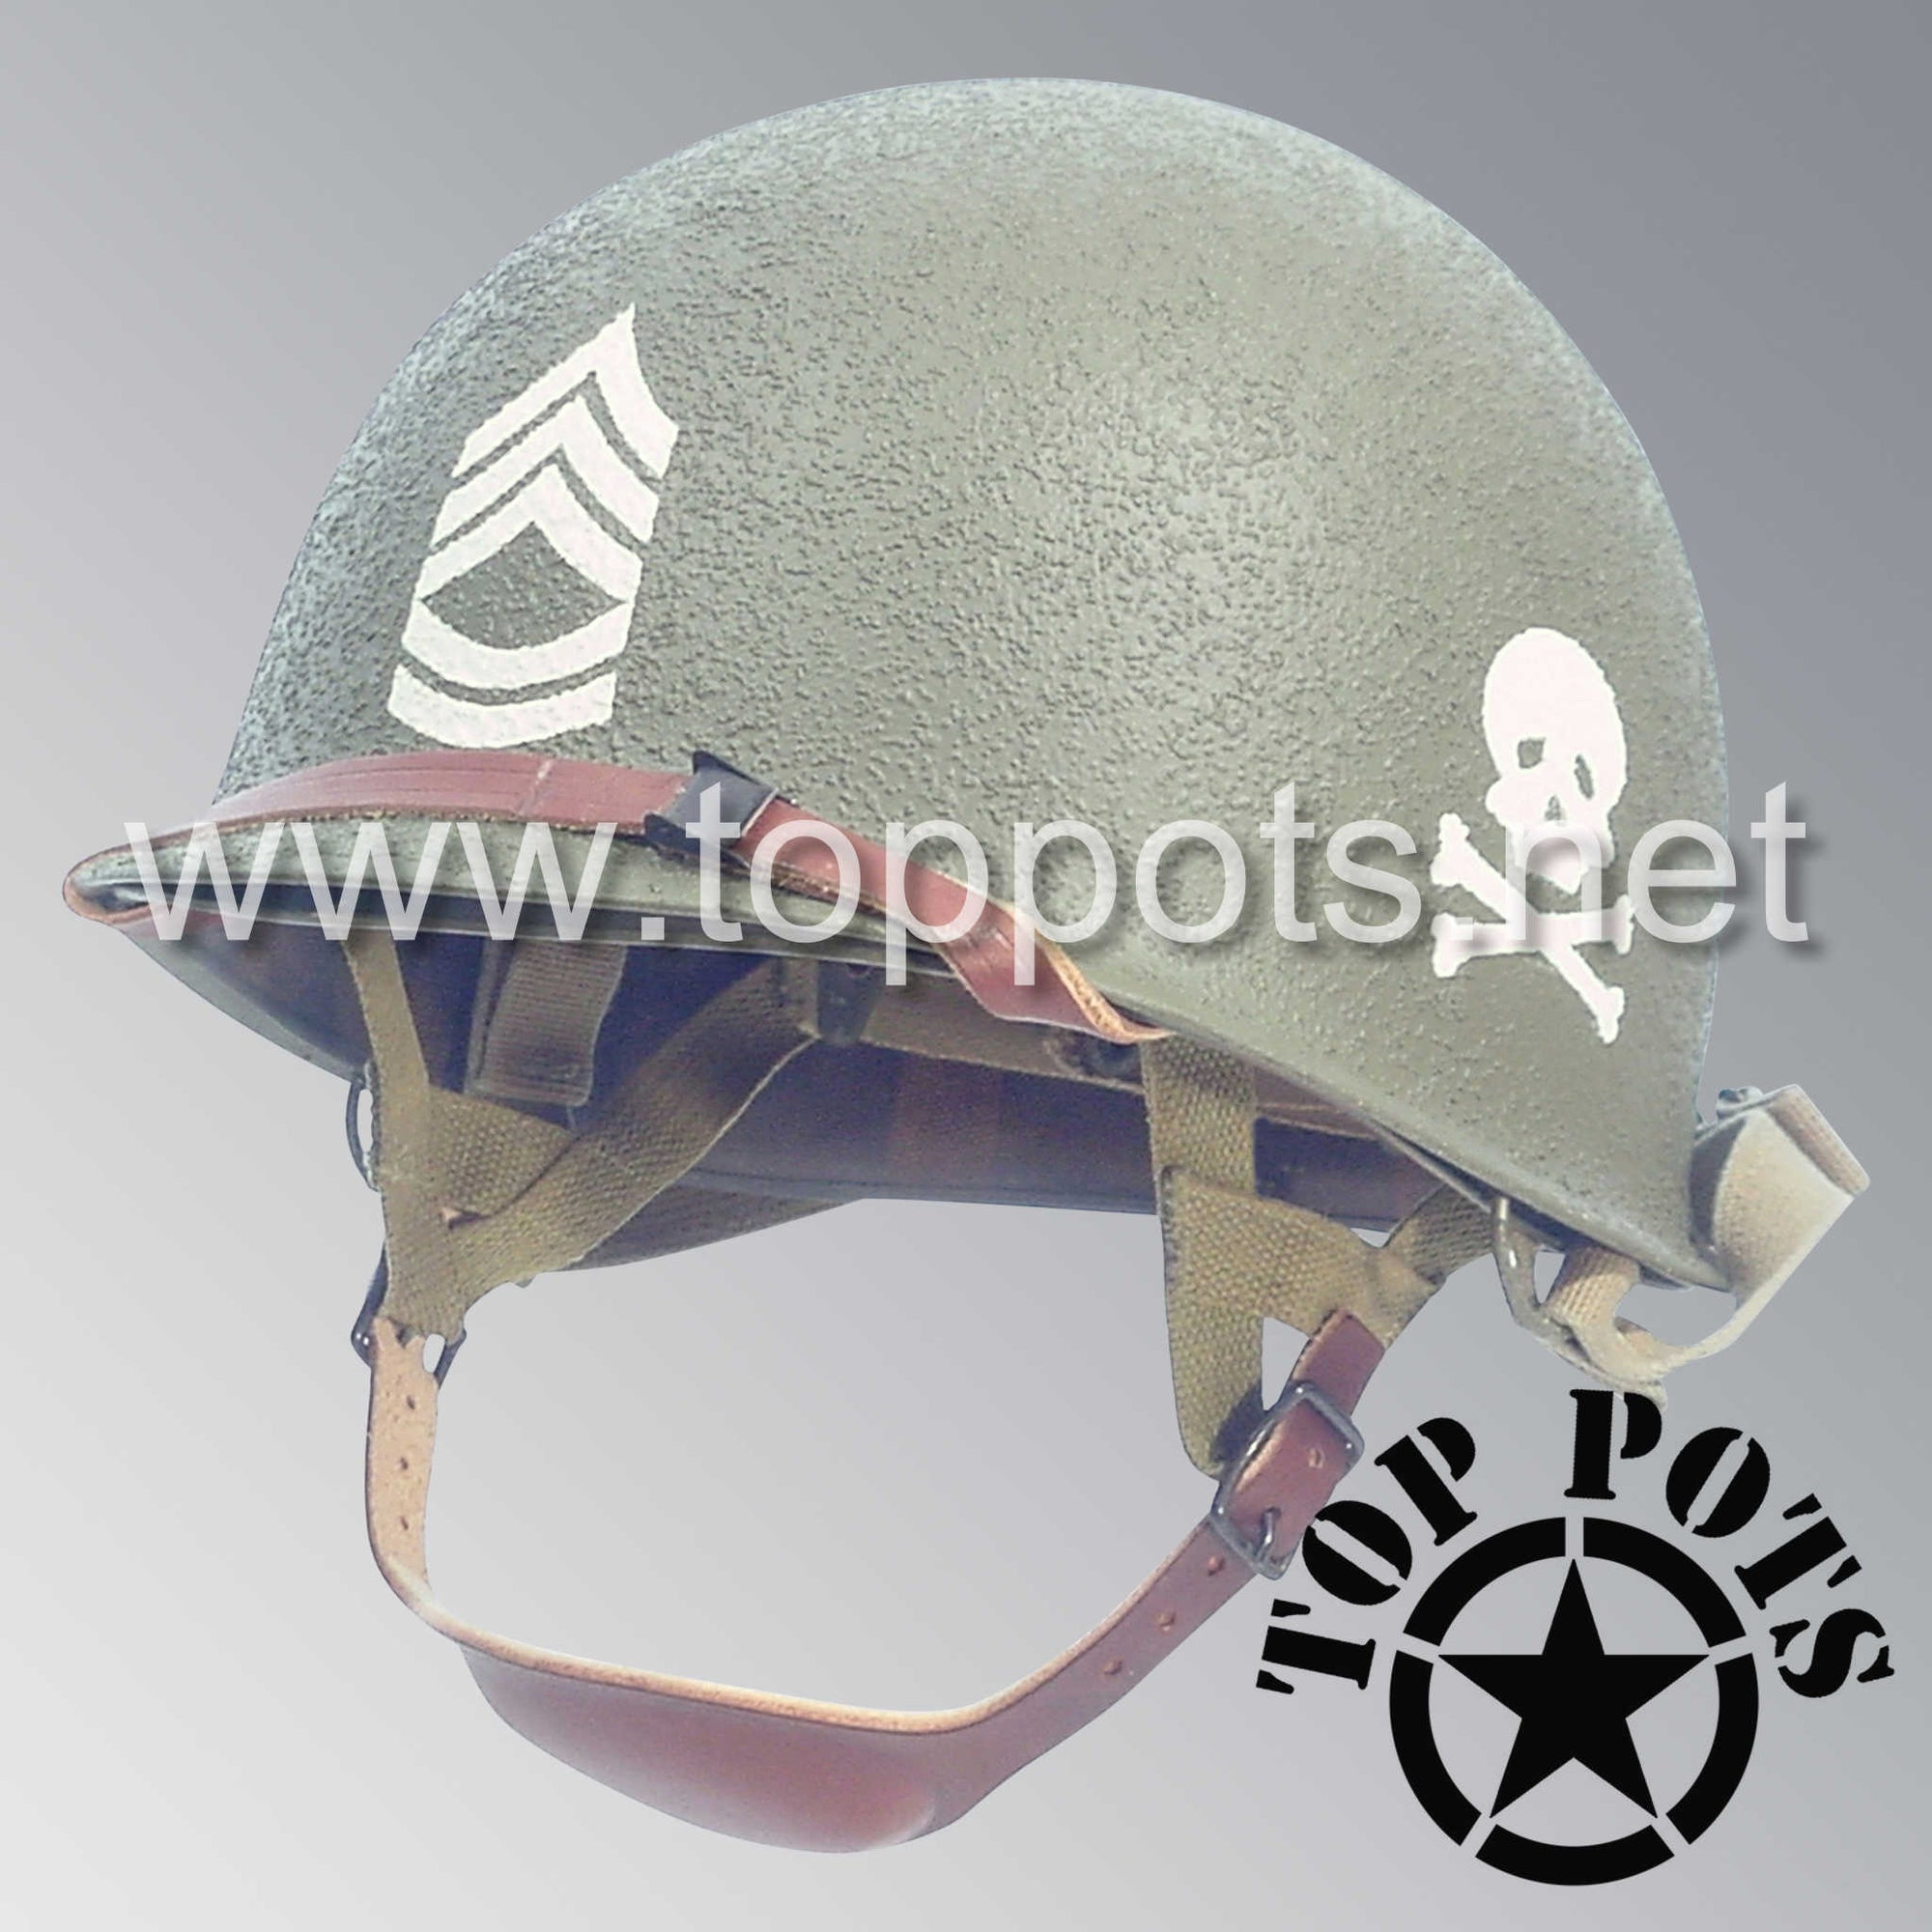 Image 1 of WWII US Army Restored Original M2 Paratrooper Airborne Helmet D Bale Shell and Liner with 504th PIR NCO Emblem